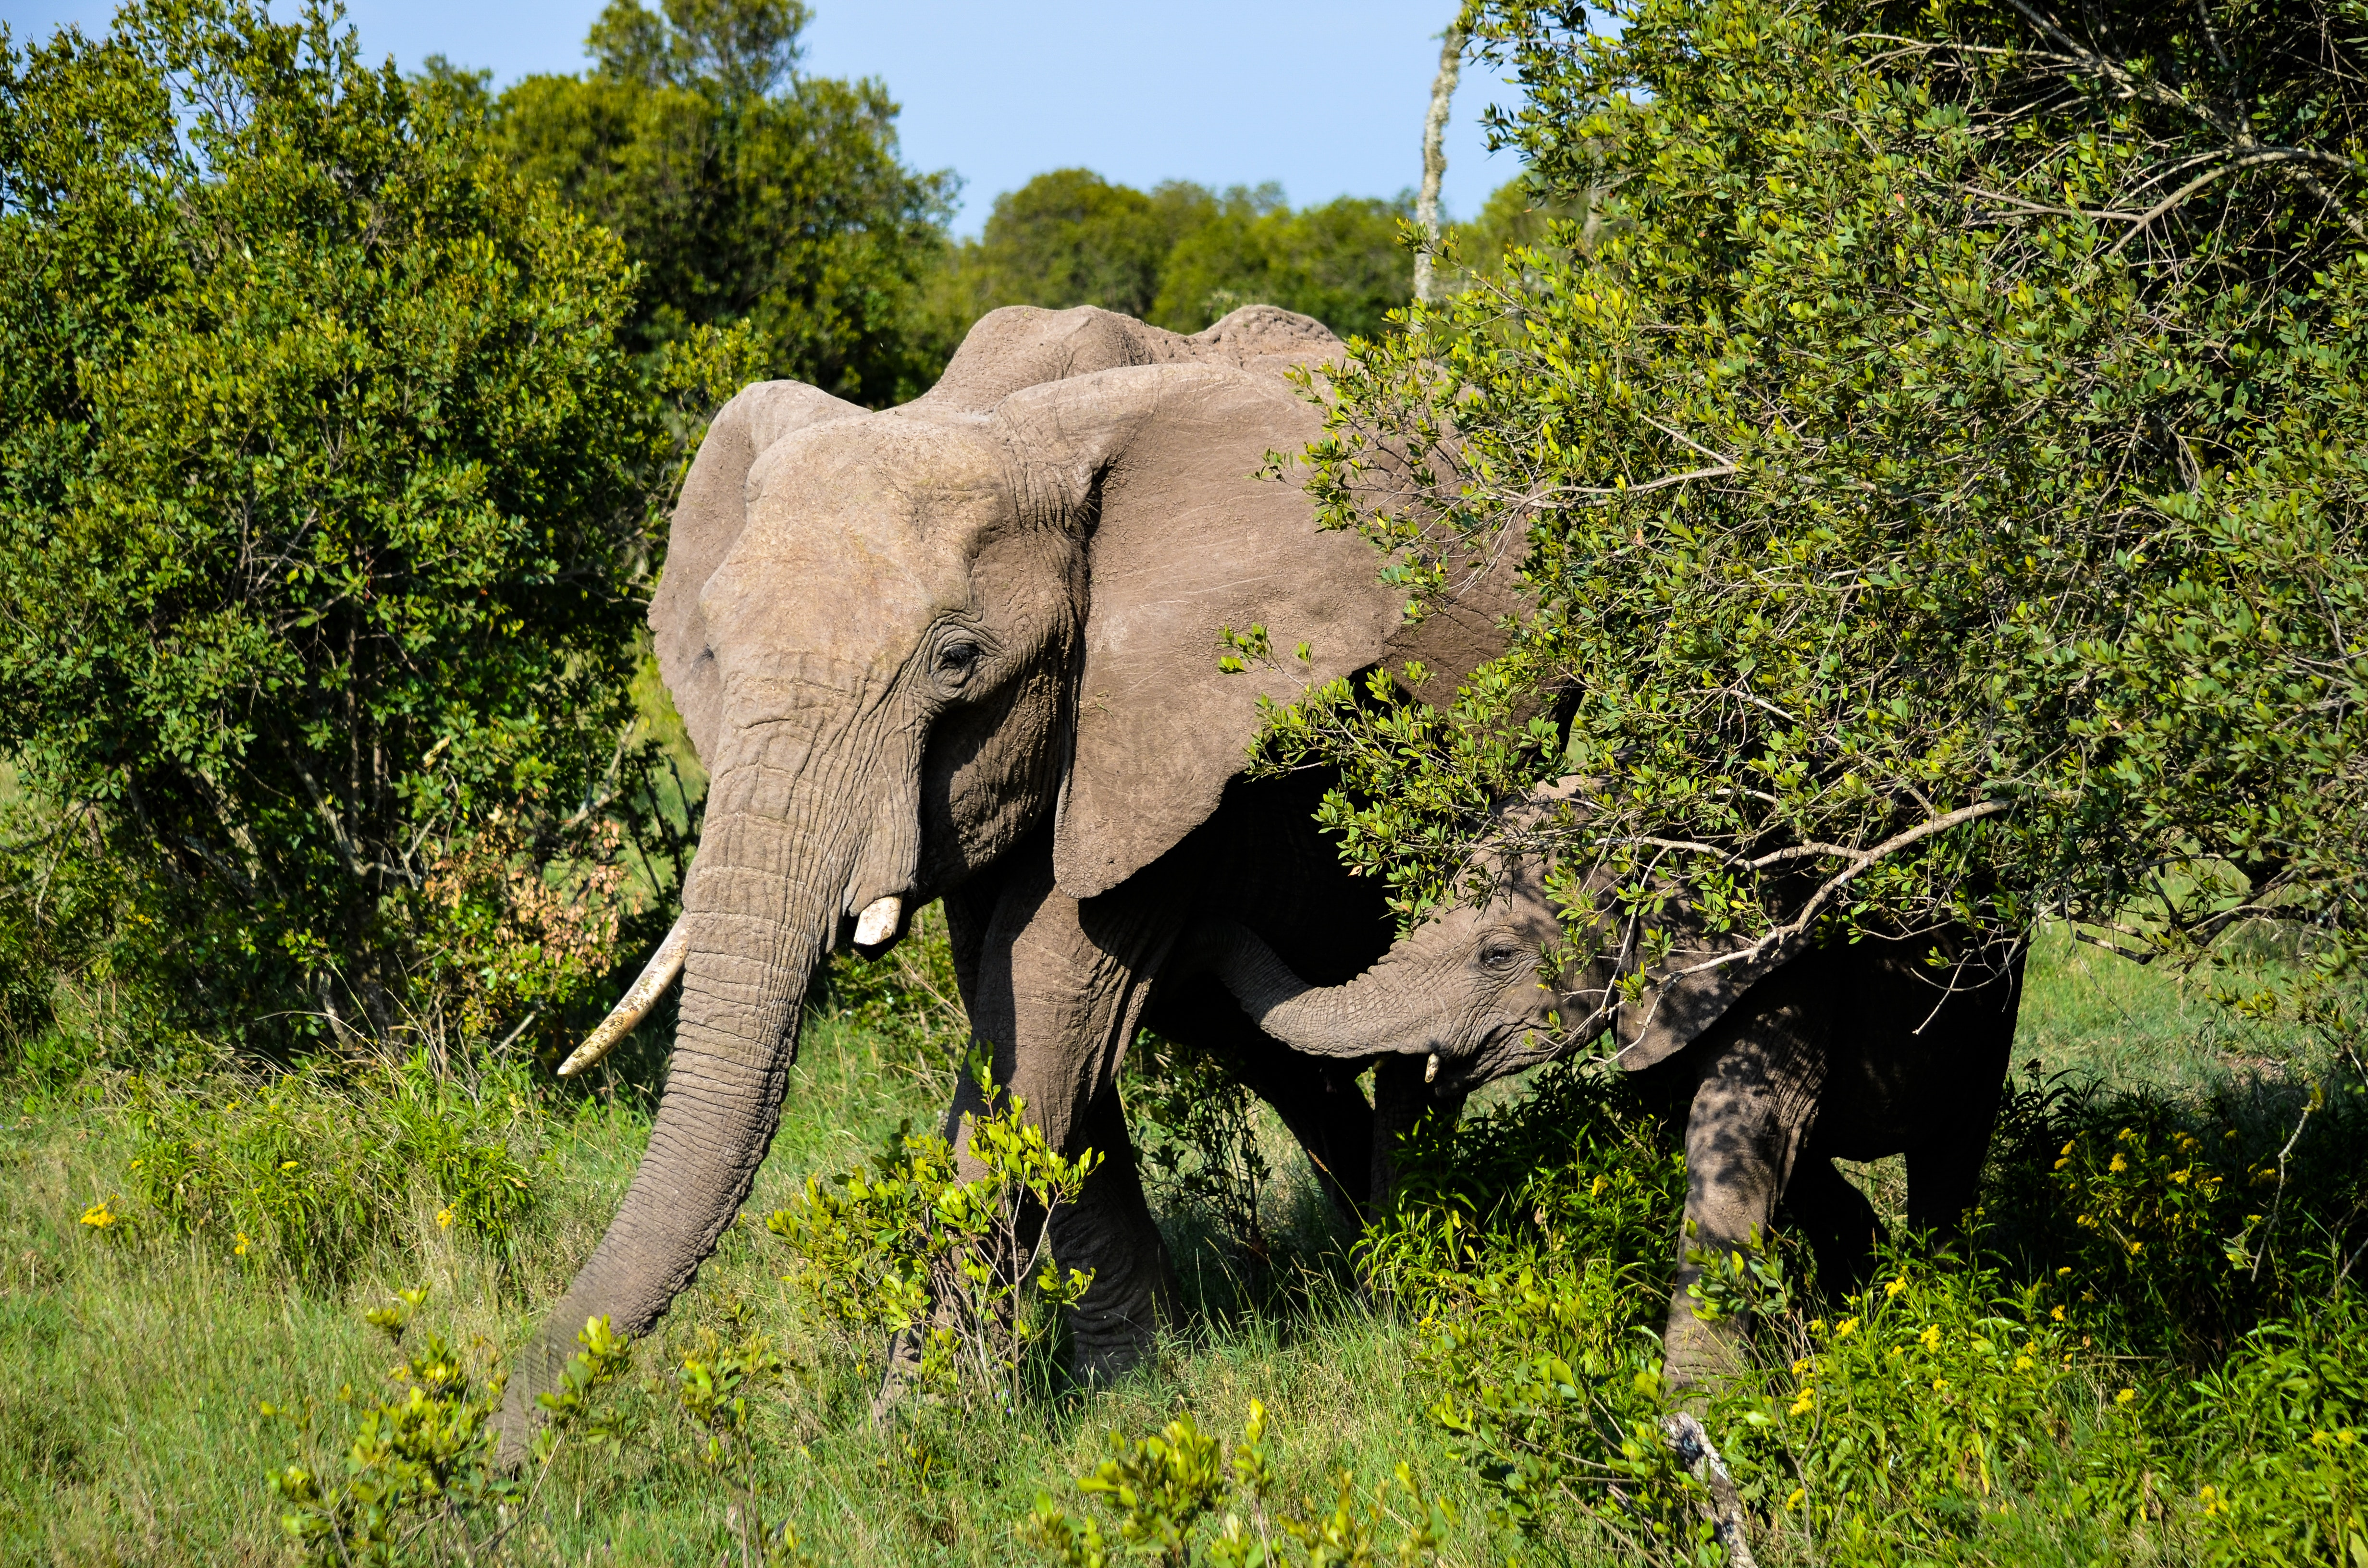 Elephants Walking in Forest, Adult, Photography, Wilderness, Wild, HQ Photo